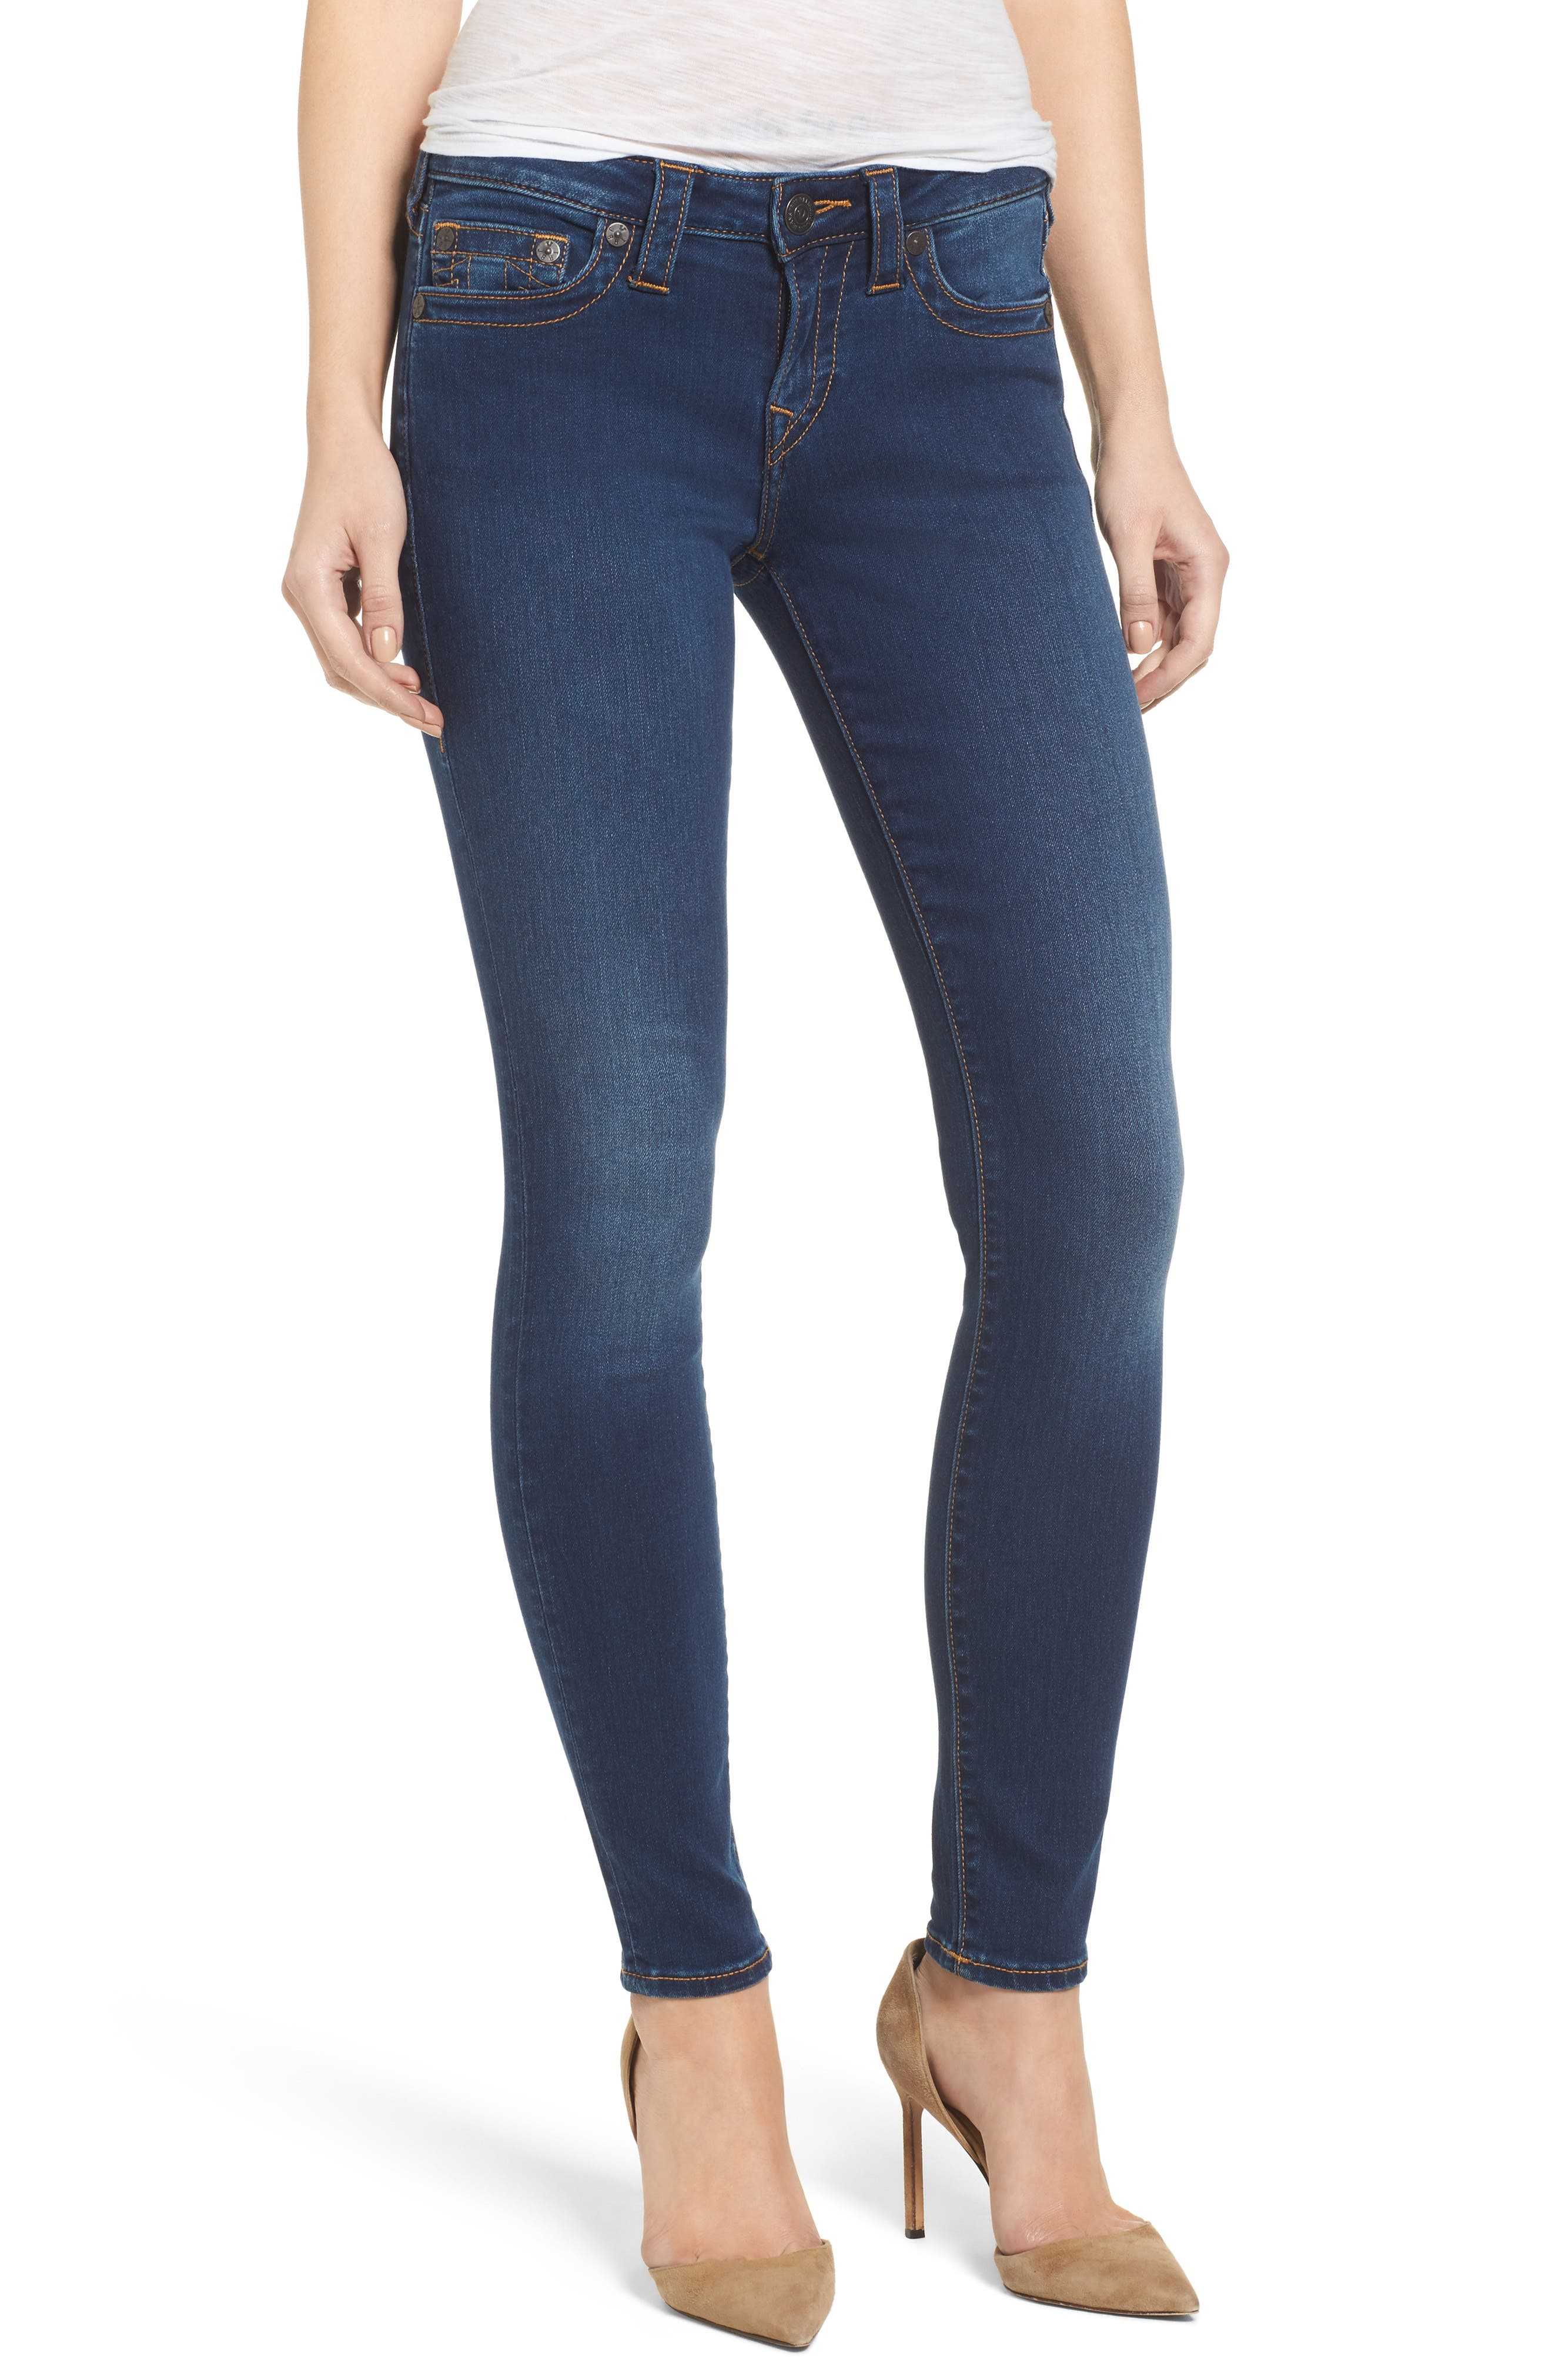 Halle Mid Rise Skinny Jeans,                         Main,                         color, Lands End Indigo